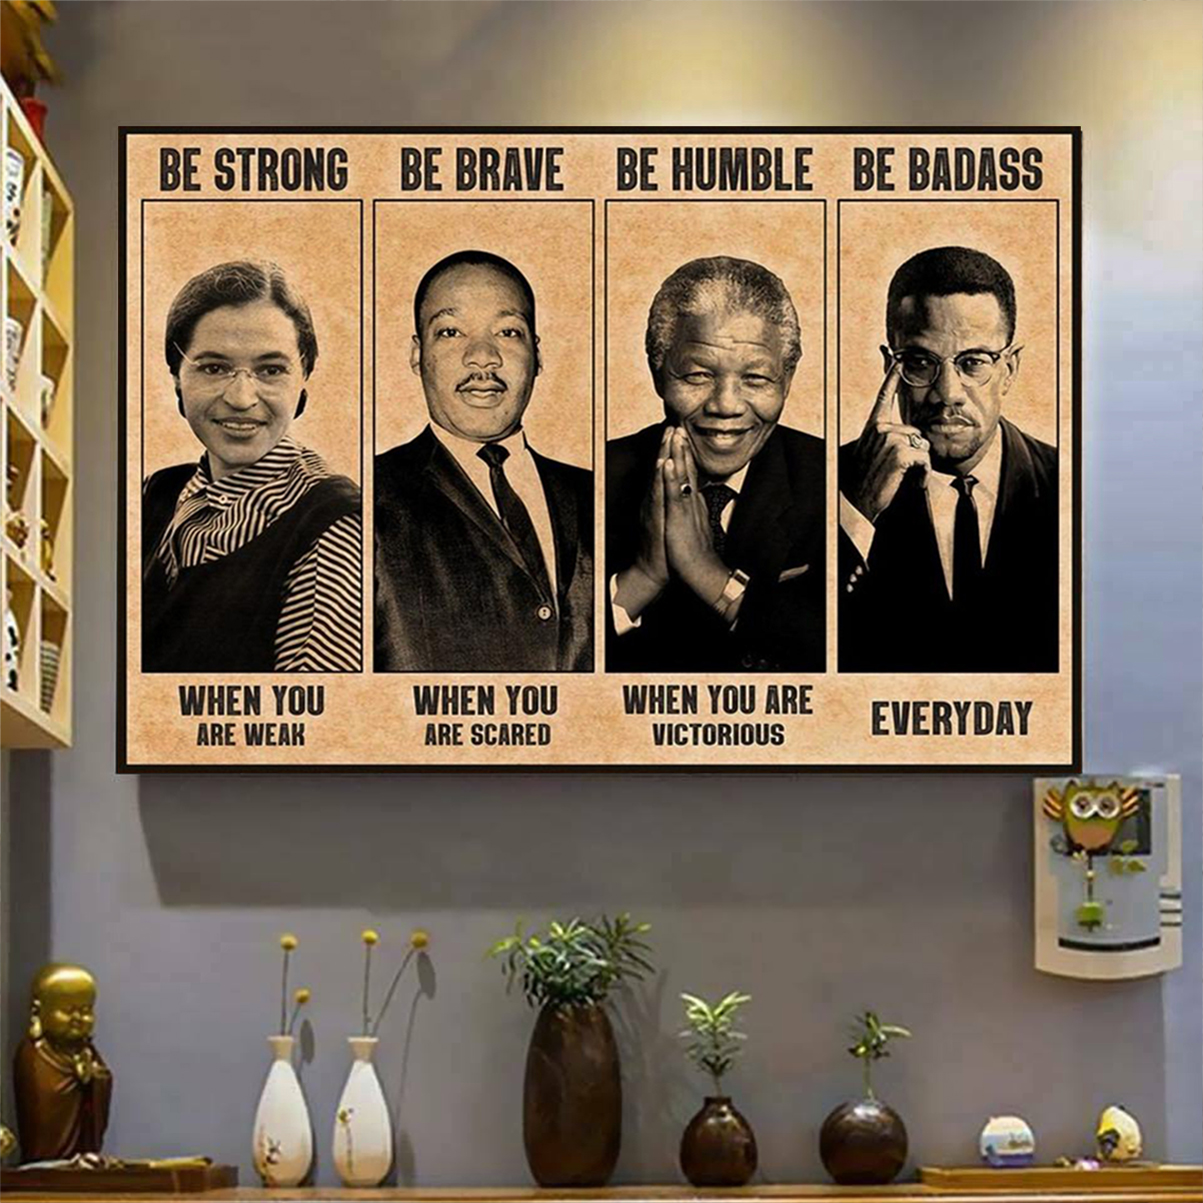 The civil rights leaders be strong be brave be humble be badass poster A1